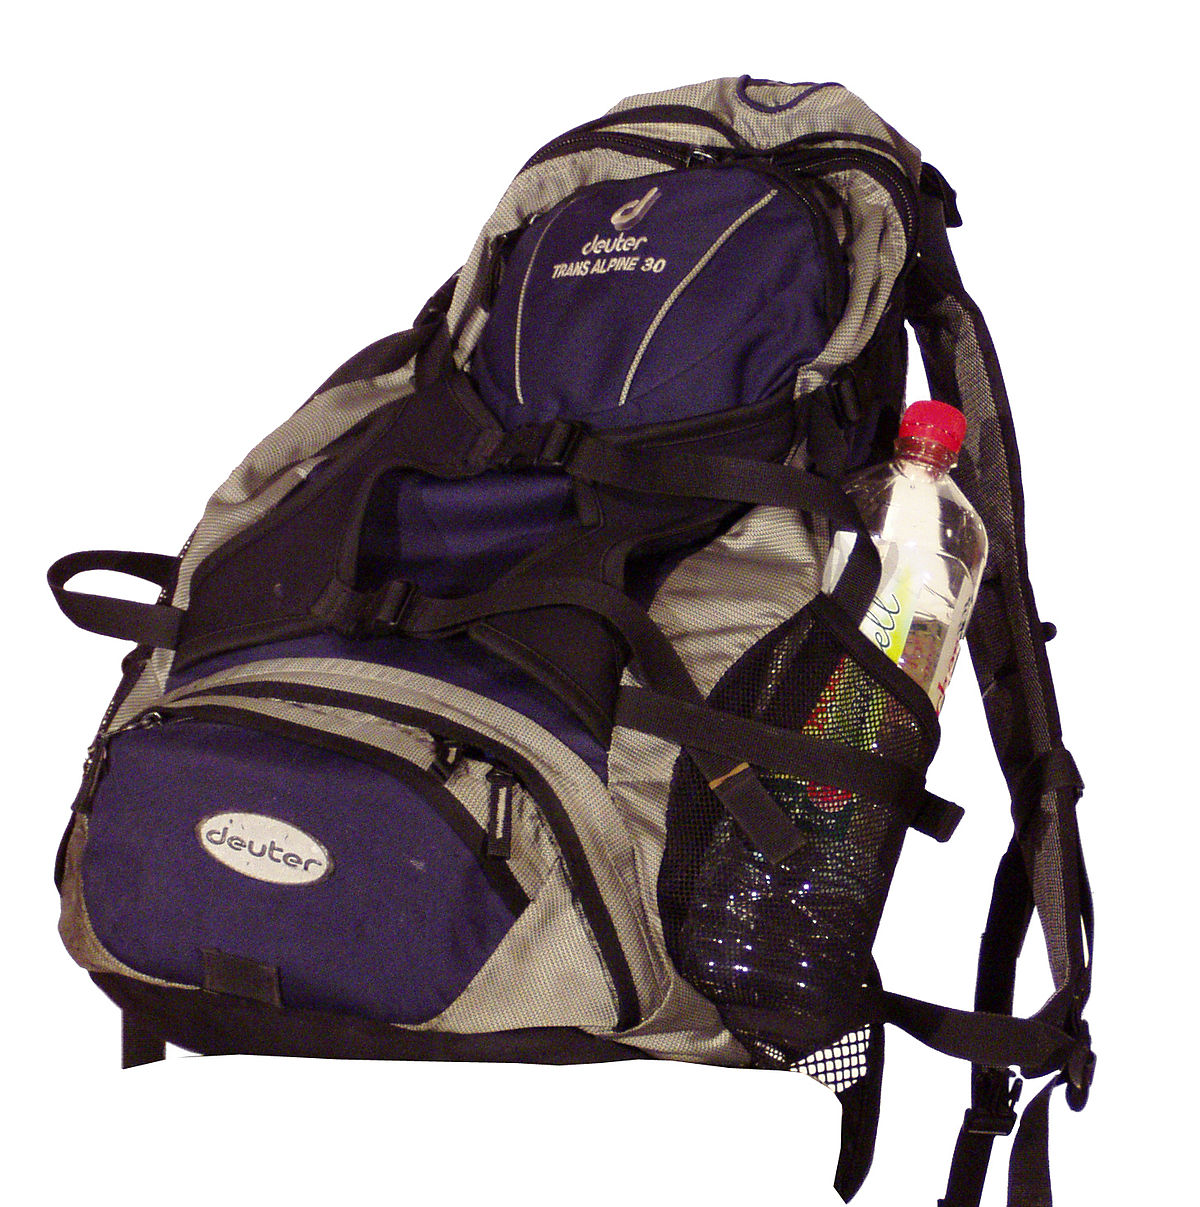 Backpack - Wikipedia bd7b0222bb52f